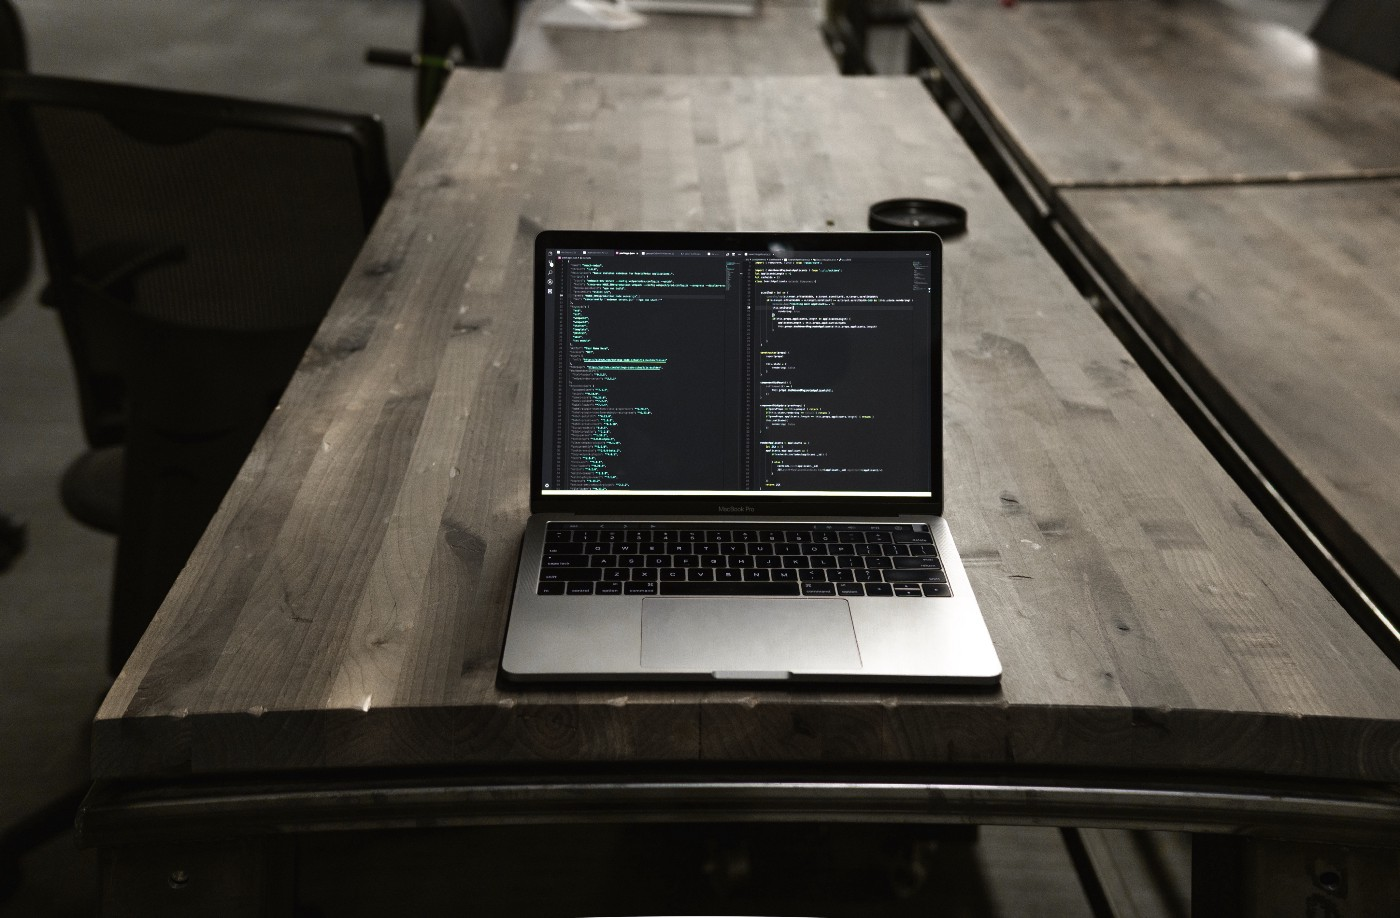 A computer sits on a wooden desk, displaying code